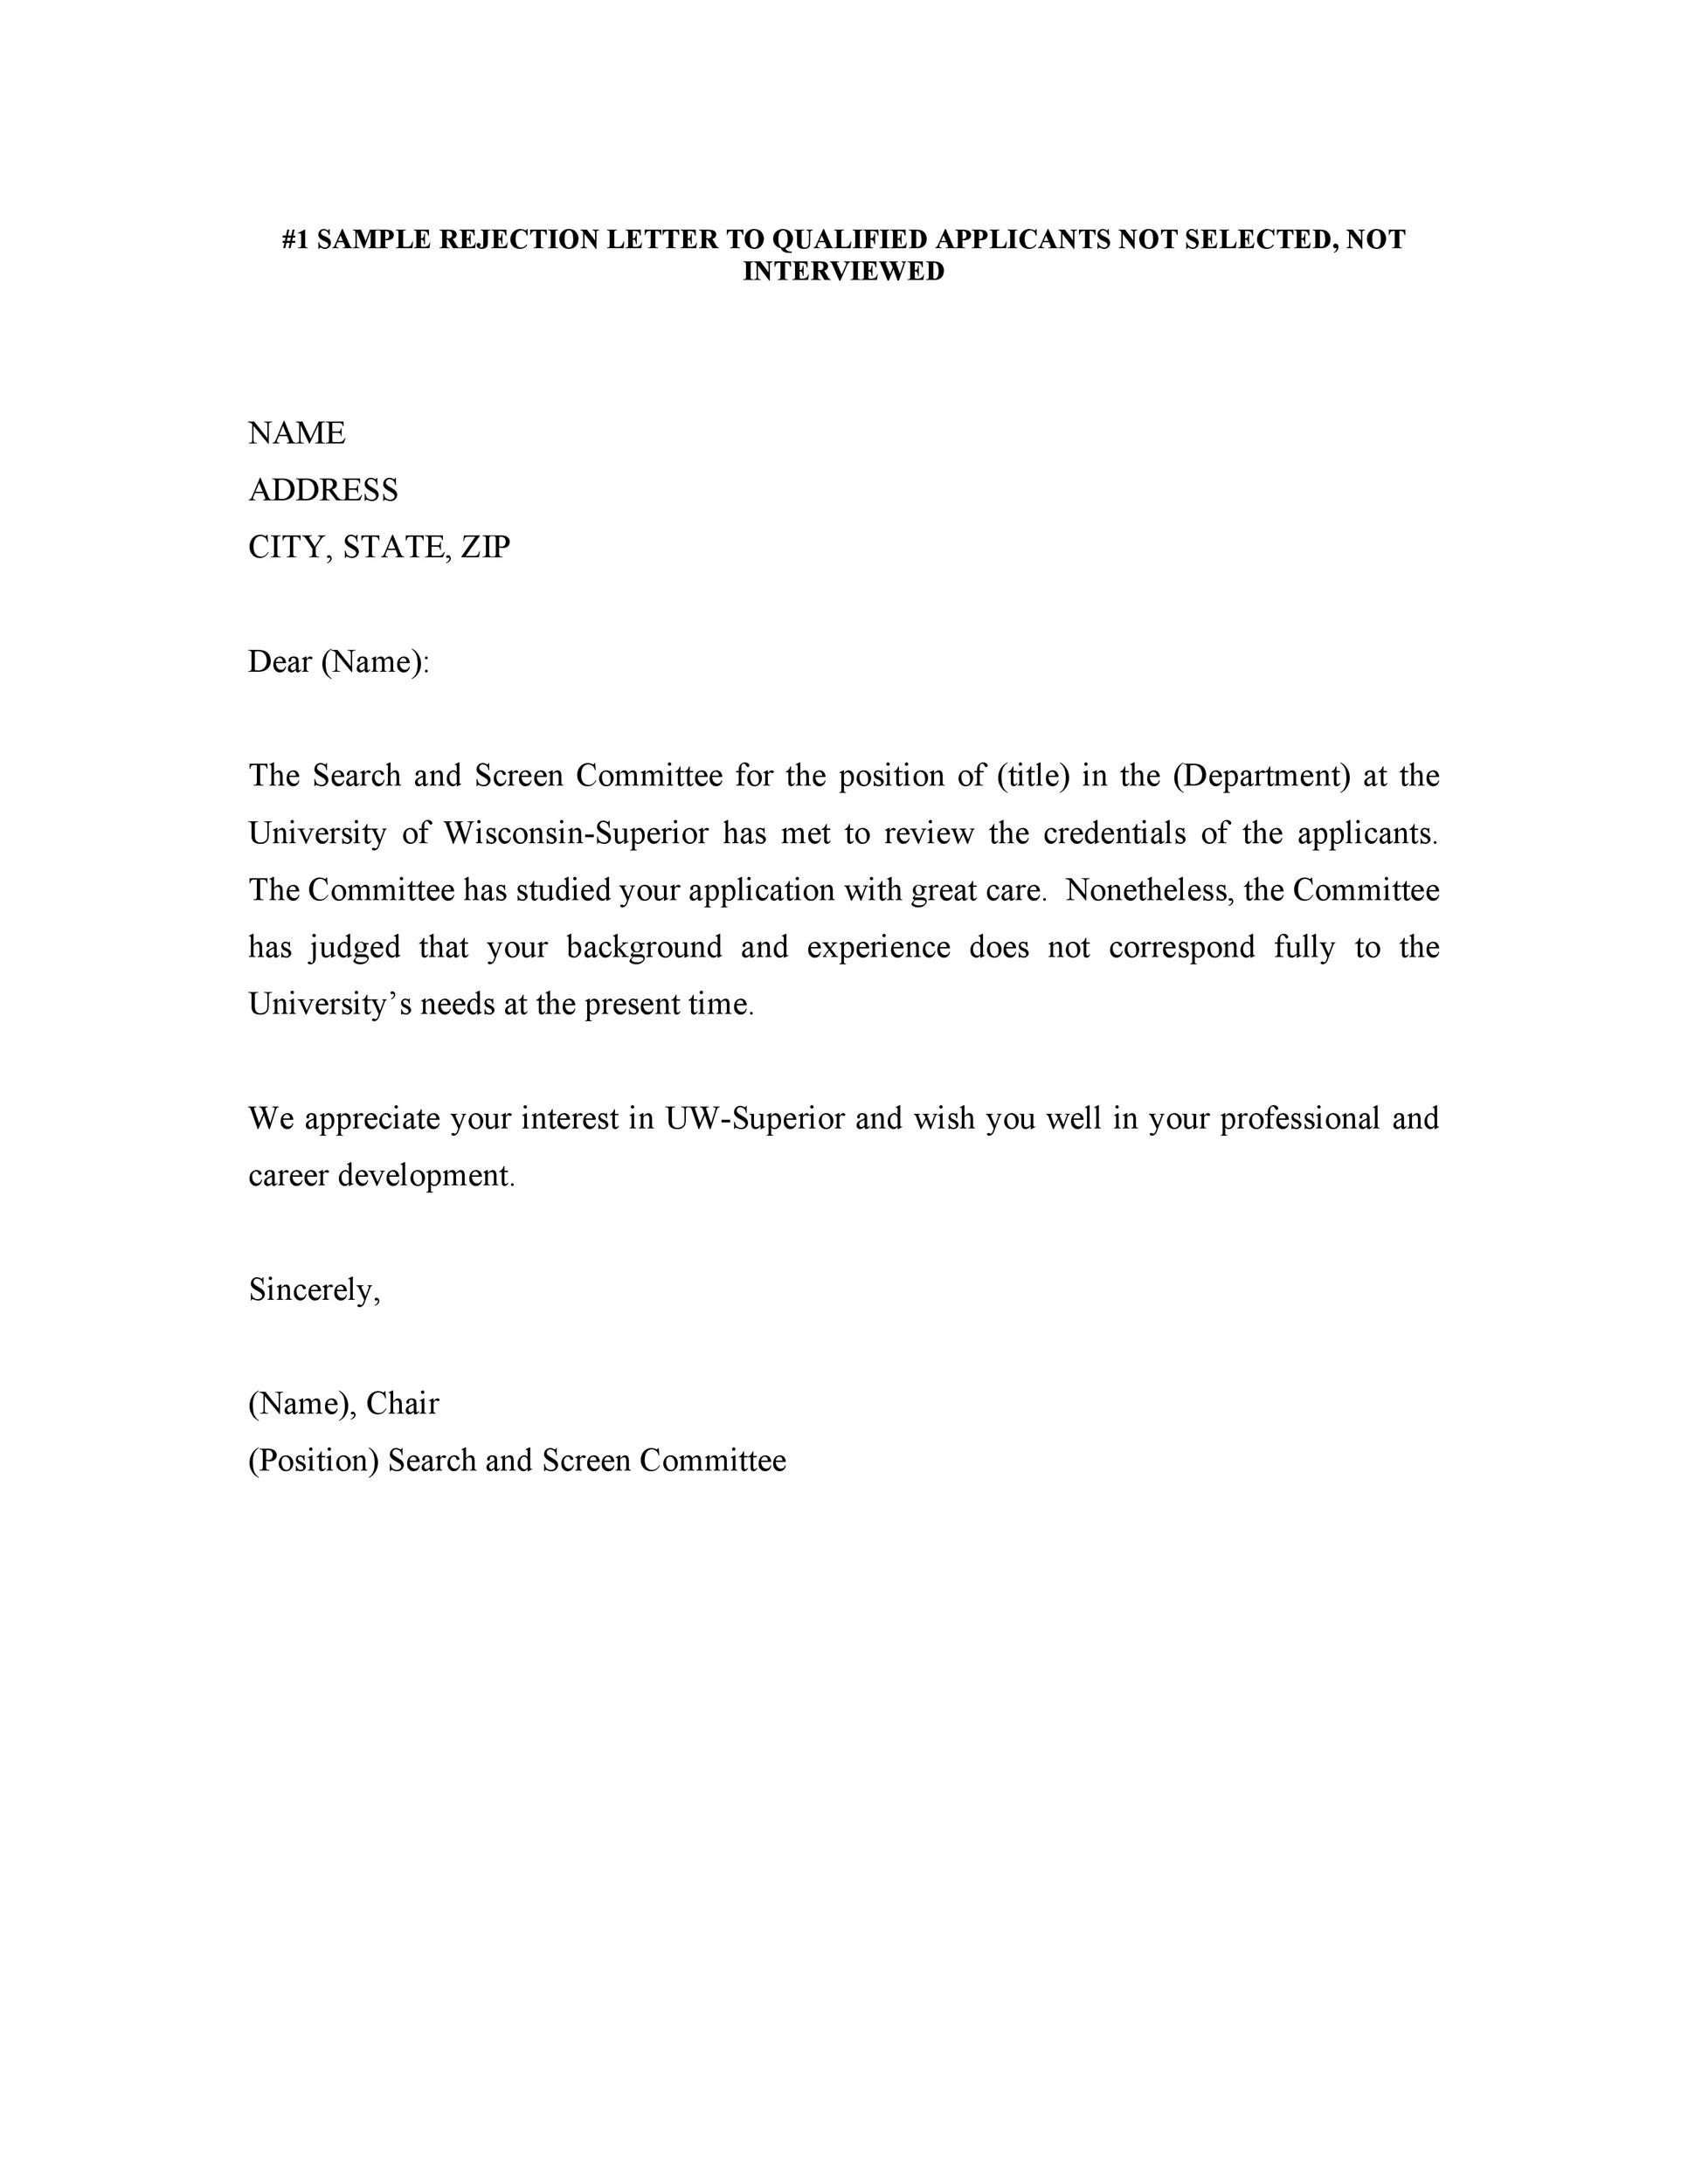 Sample Rejection Letter After Interview from templatelab.com